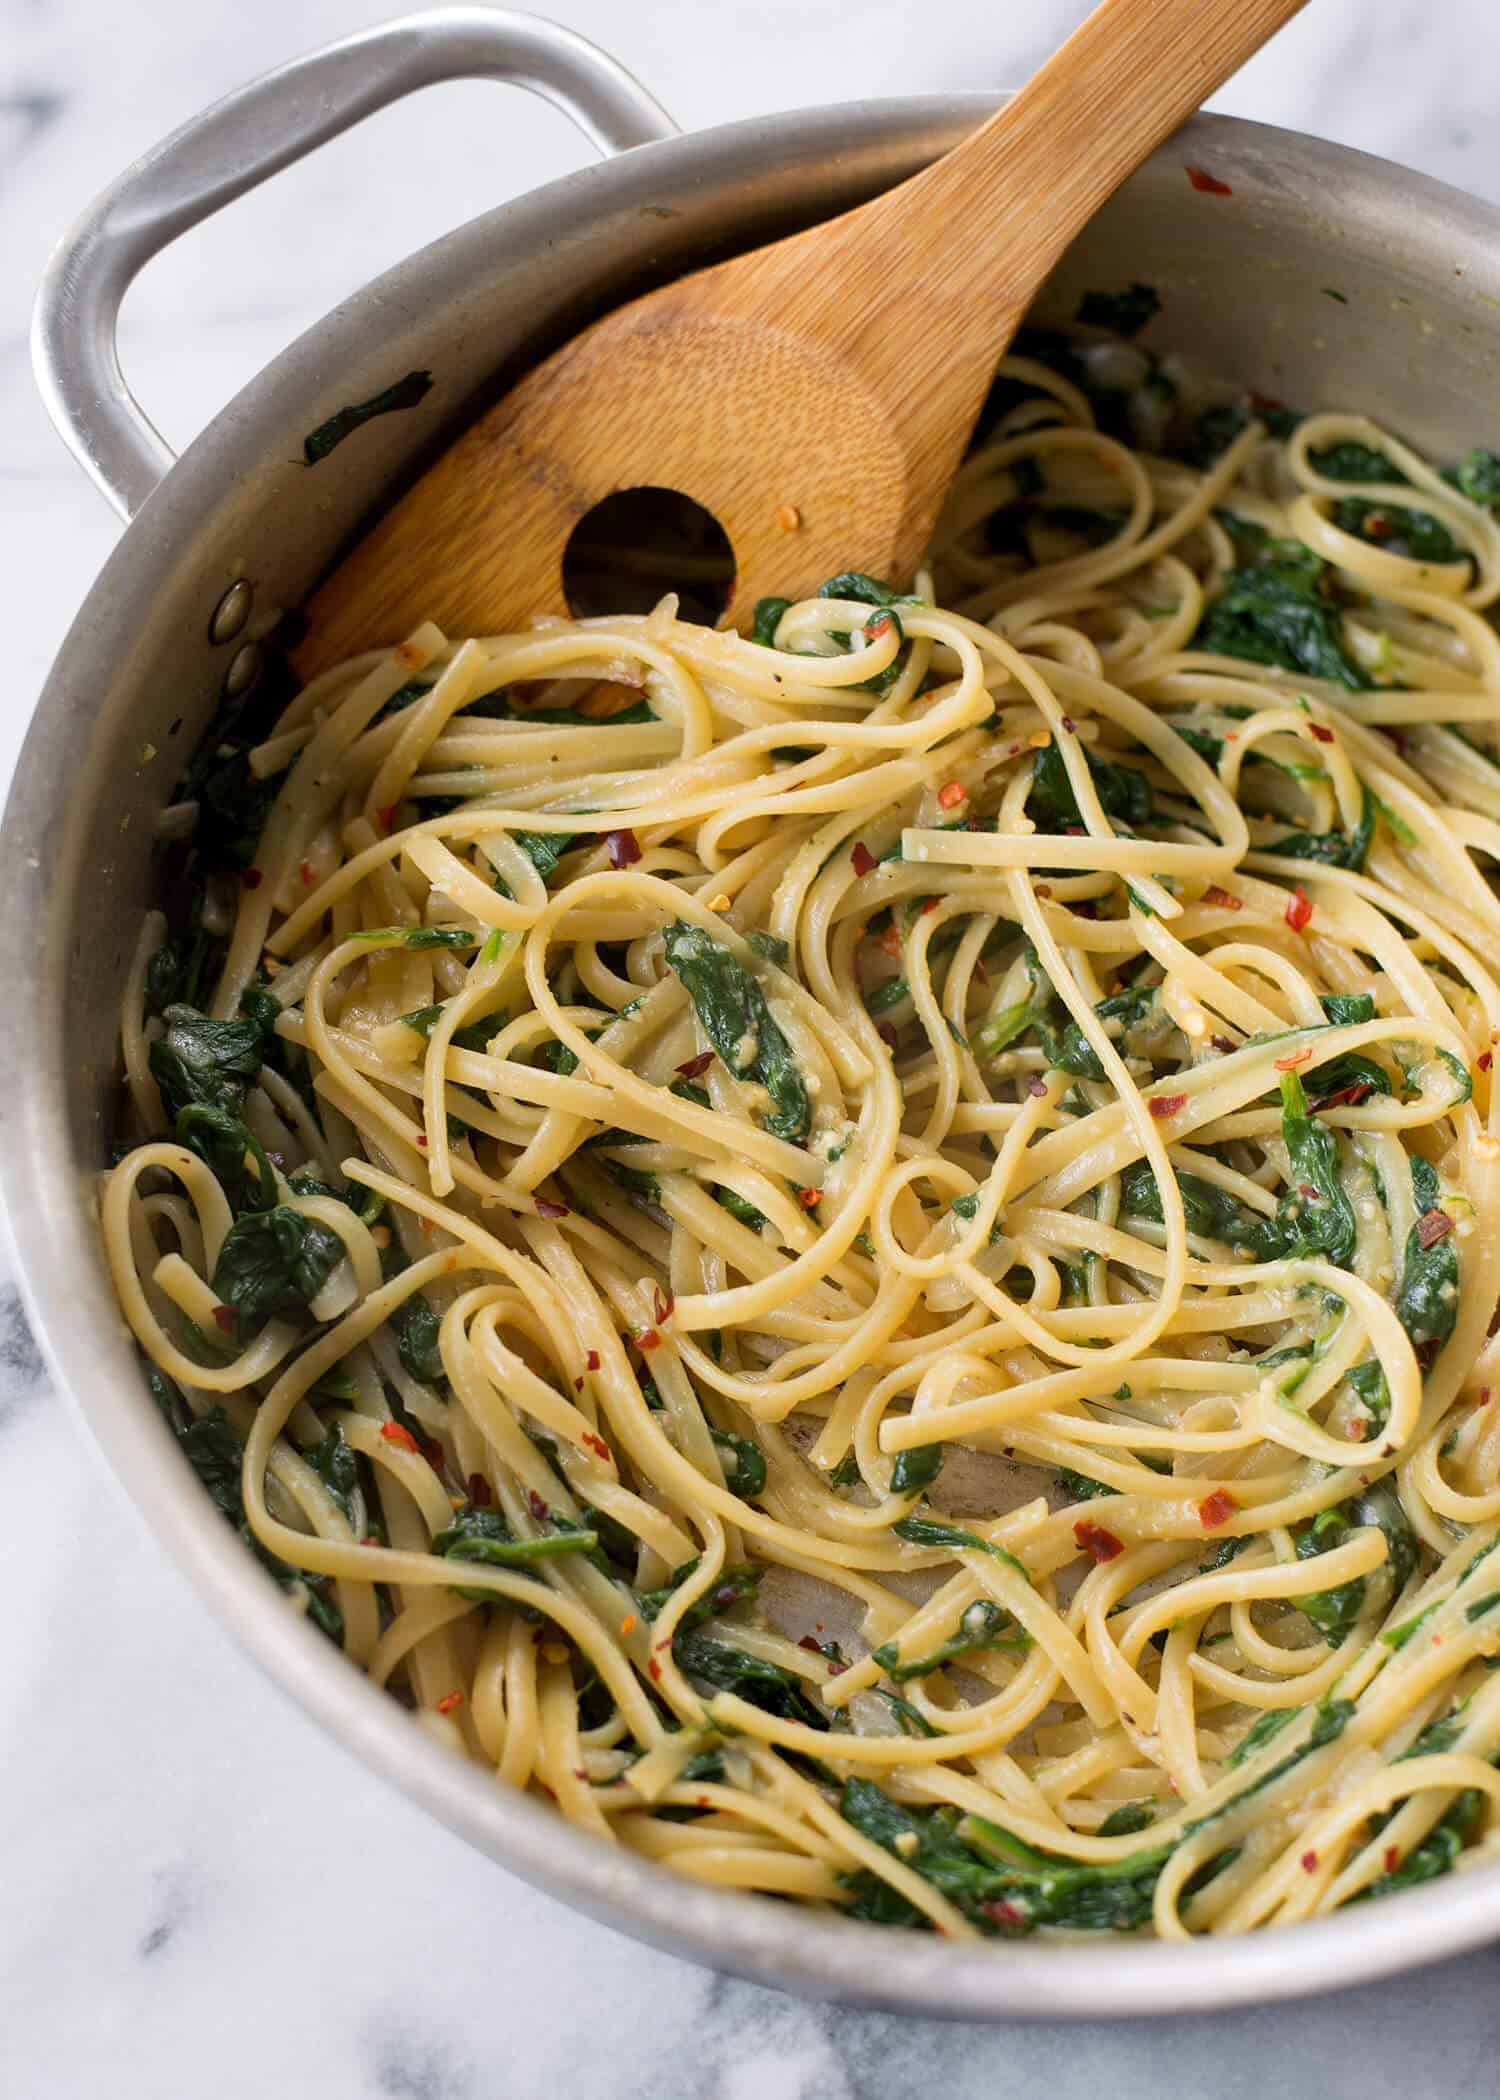 Easy, 20 Minute Vegan Pasta! You are going to love this healthy, easy vegan pasta! With a trick to creating glossy, restaurant-style pasta, this is a must save for quick dinners. | www.delishknowledge.com